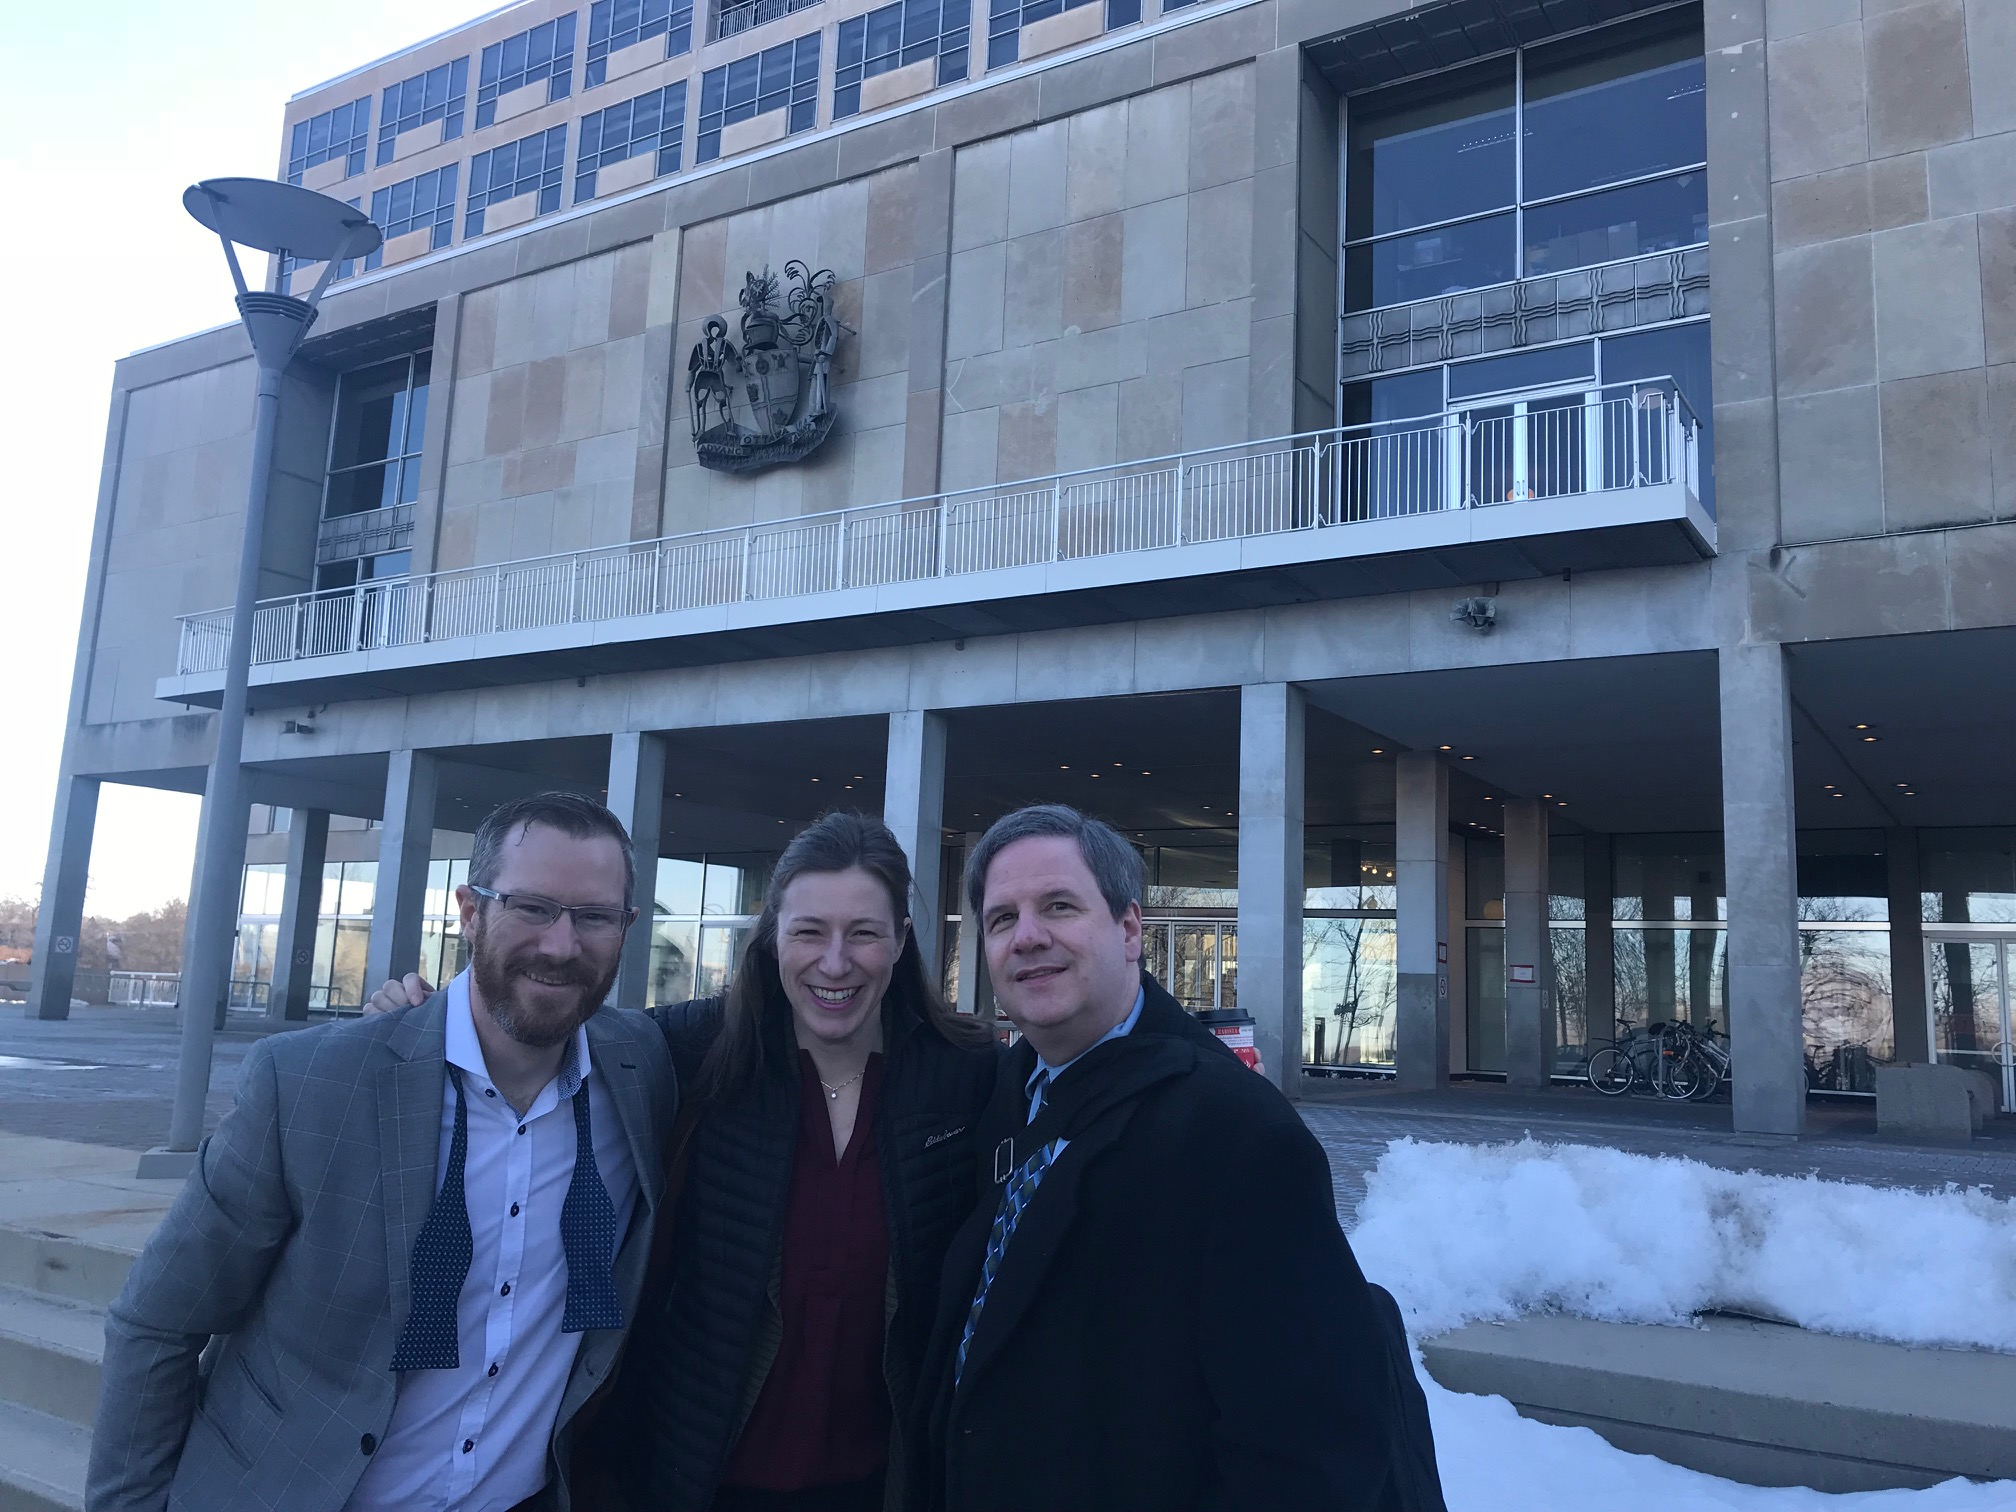 Joseph Devaney, Caitlin Butler and Hugh Neilson are getting ready to enter Budget Lock-up.